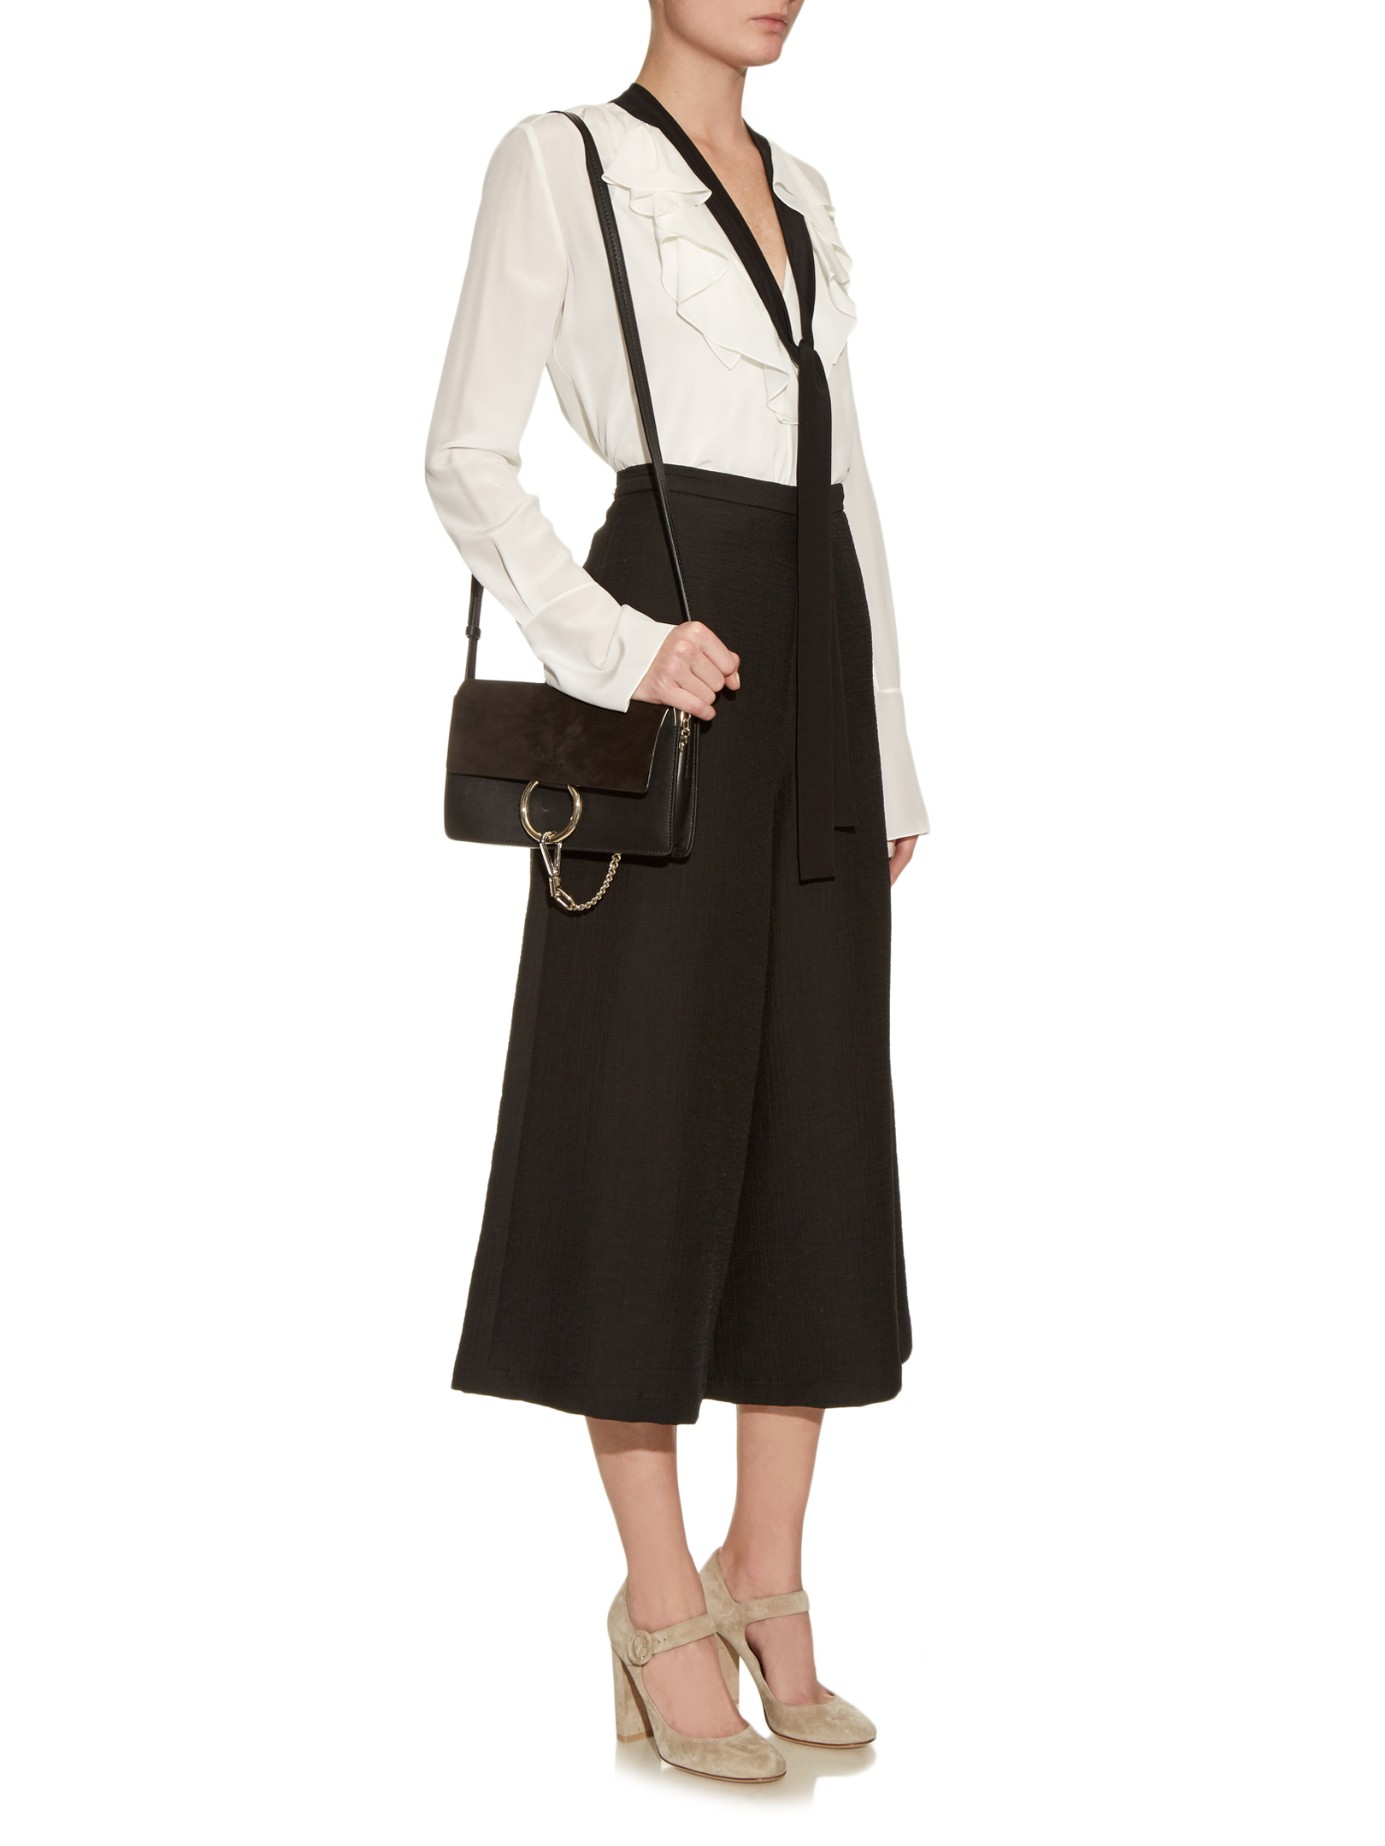 b524c37899d29 Chloé Faye Small Leather And Suede Cross-body Bag in Black - Lyst